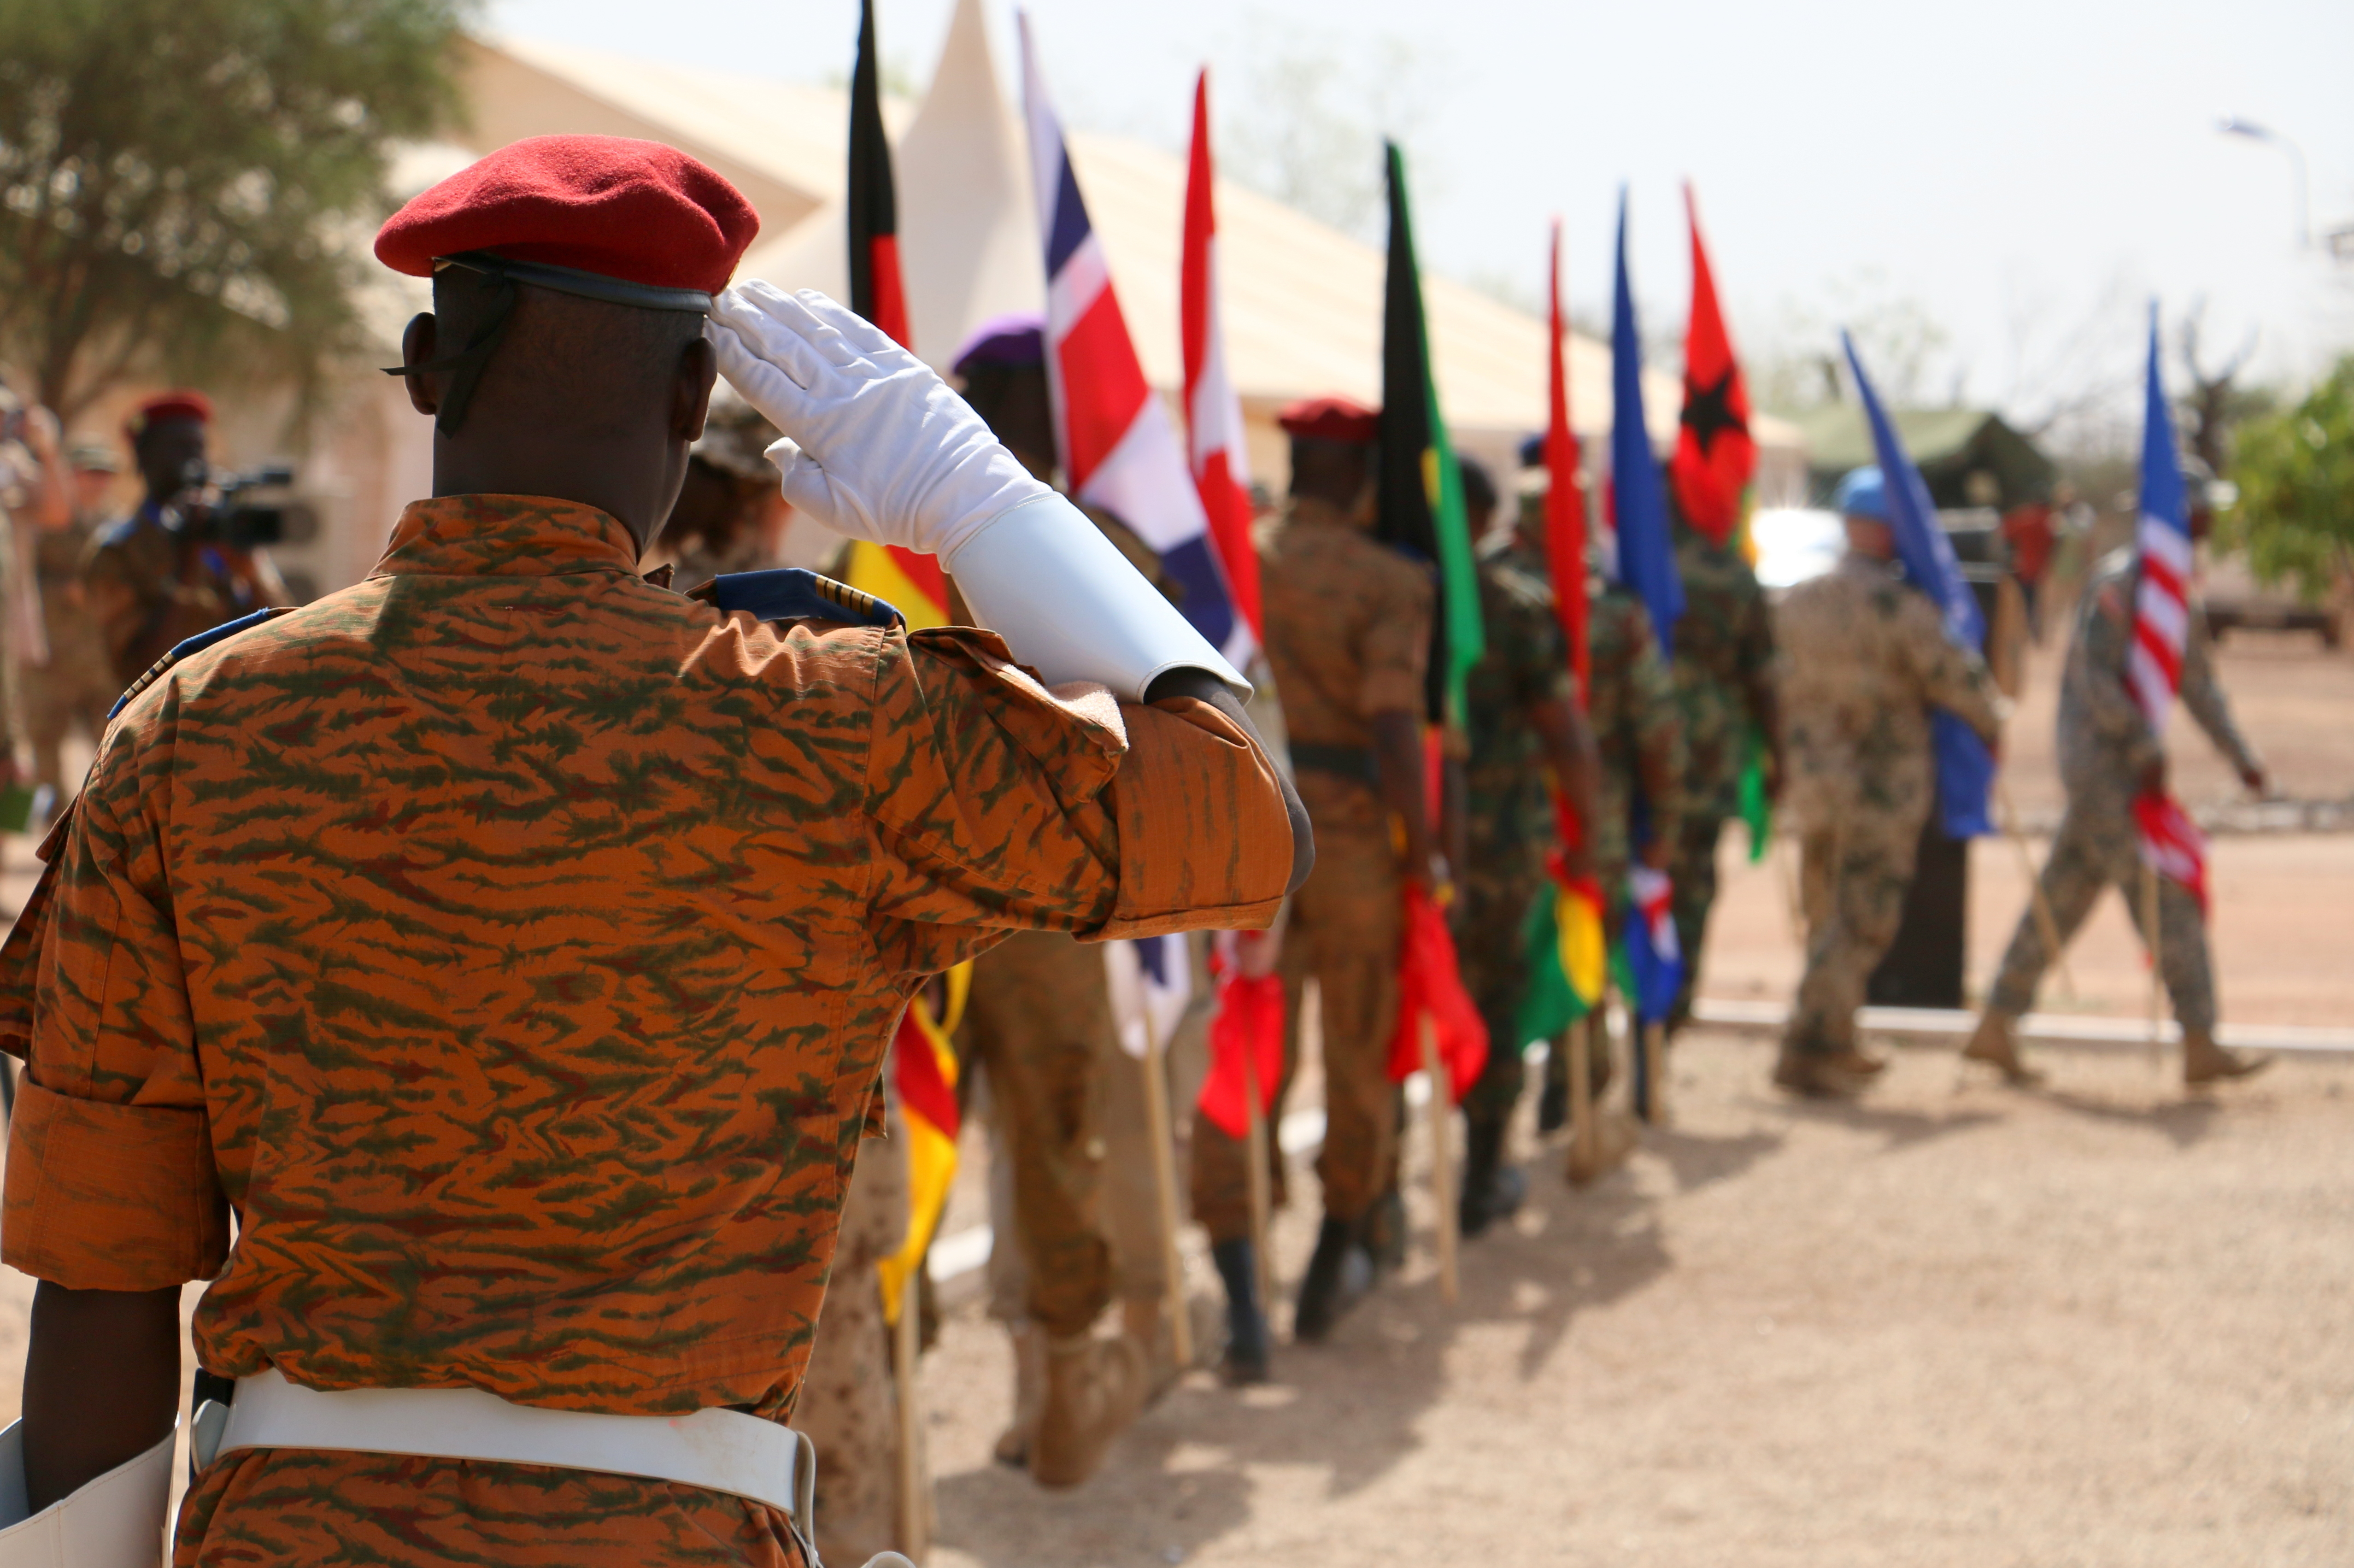 An officer from the Burkina Faso army salutes as international flags march past him during the Western Accord 16 Opening Day Ceremony May 2, 2016 at Camp Zagre, Ouagadougou, Burkina Faso. Western Accord 16 is an annual combined, joint exercise designed to increase the ability of African partner forces and the U.S. to exercise participants' capability and capacity to conduct African Union/United Nation mandated Peace Operations. (U.S. Army photo by Staff Sgt. Candace Mundt/Released)